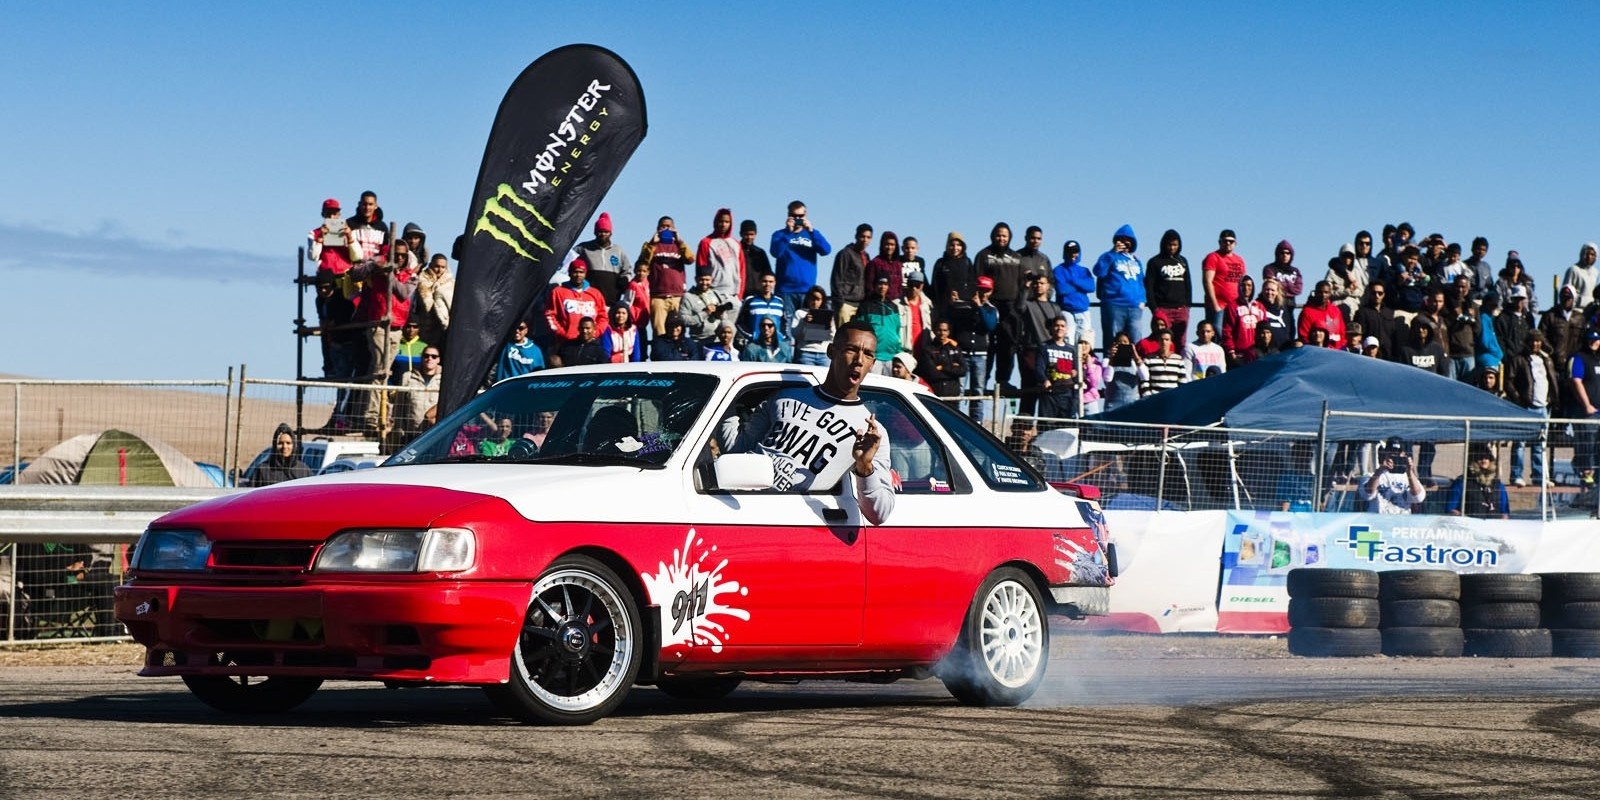 Monster Energy at the 2015 Saldanha Drags 4 in South Africa